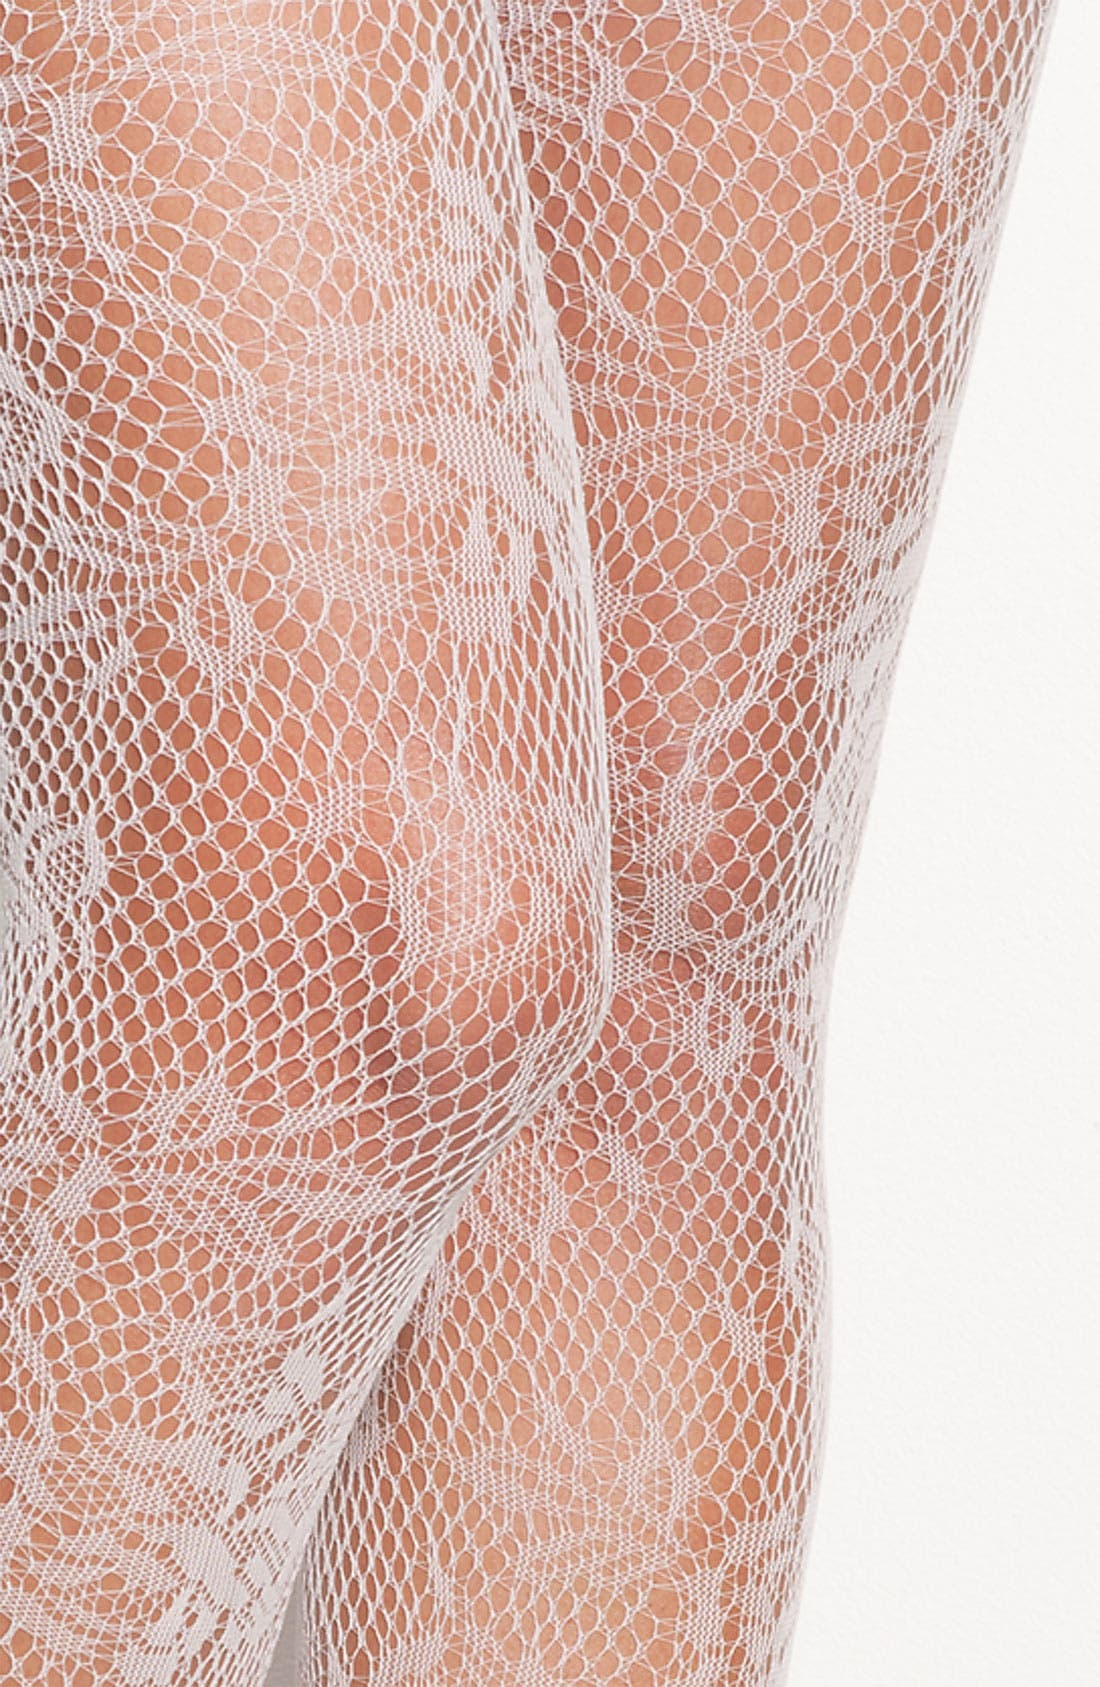 Alternate Image 2  - Hue 'Rose Floral' Fishnet Stockings (2 for $22)